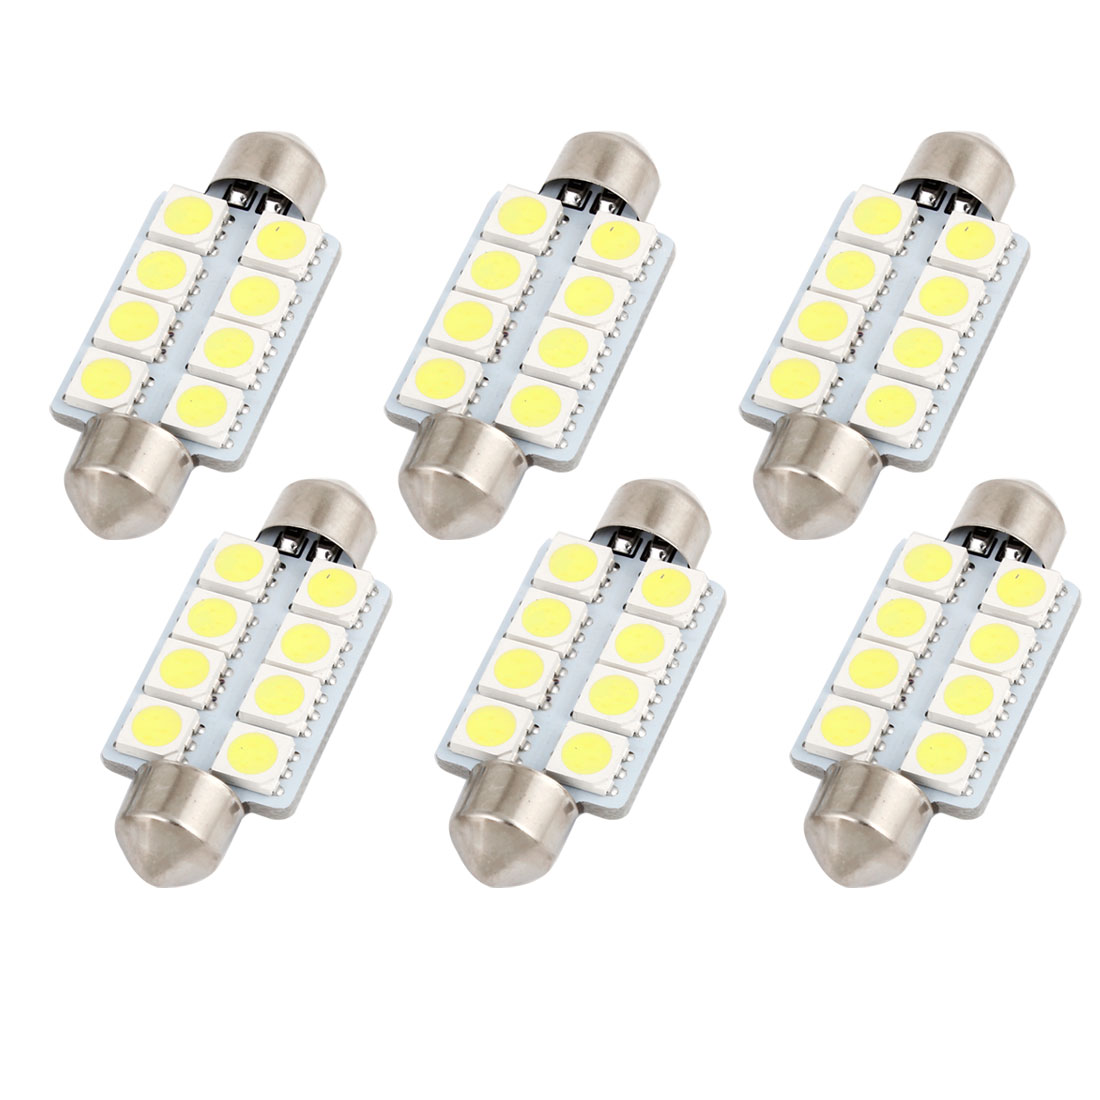 6pcs 41mm 5050 SMD 8-LED Festoon Dome Light White 6413 211-2 212-2 560 Internal